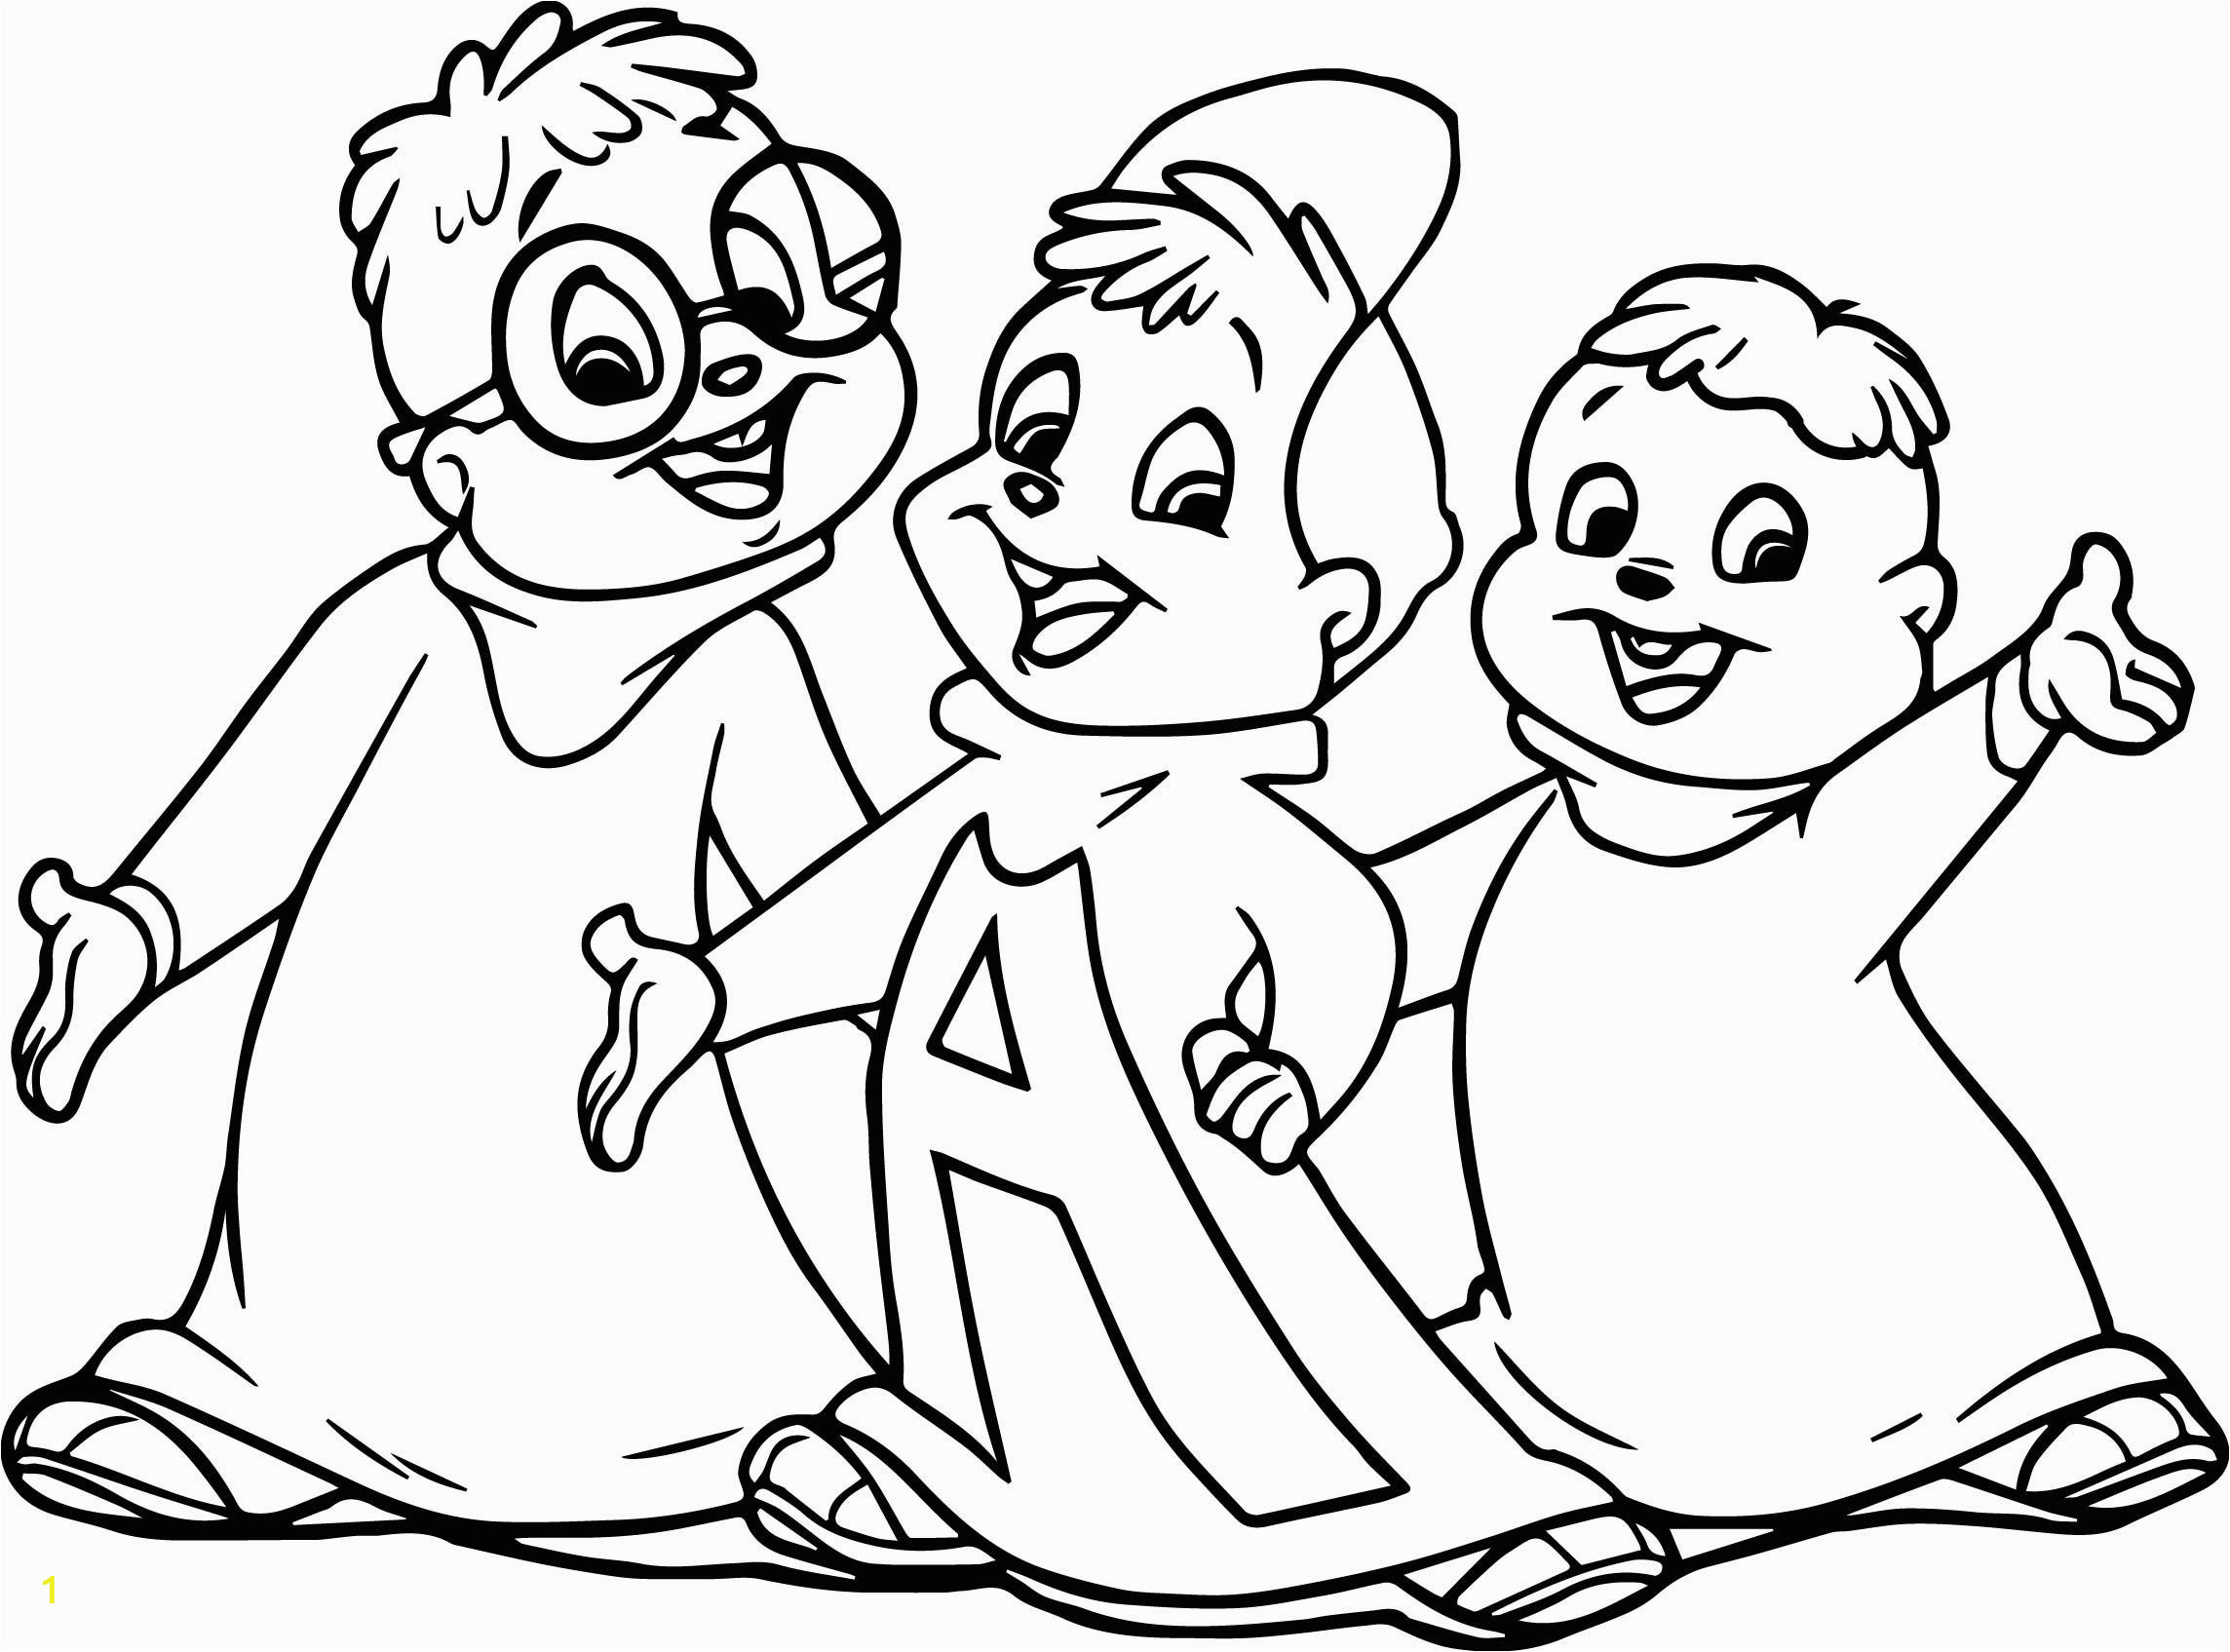 Simon the Chipmunk Coloring Pages How to Draw the Chipmunks Coloring Page